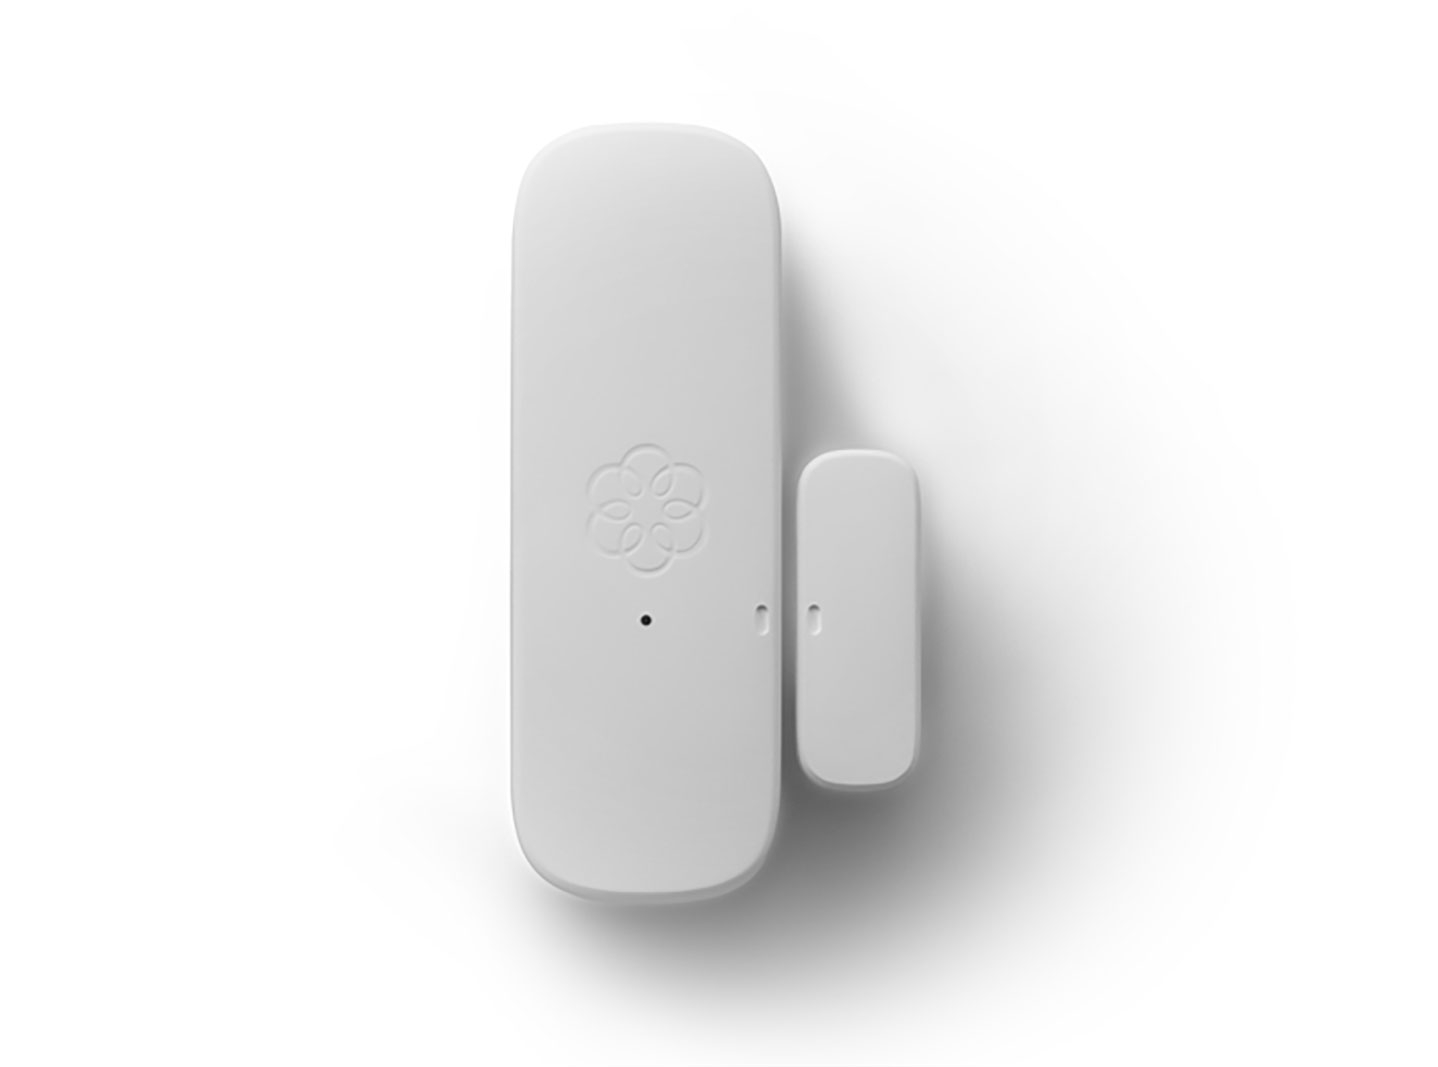 Door and window sensor used in home security with black and white backdrop.